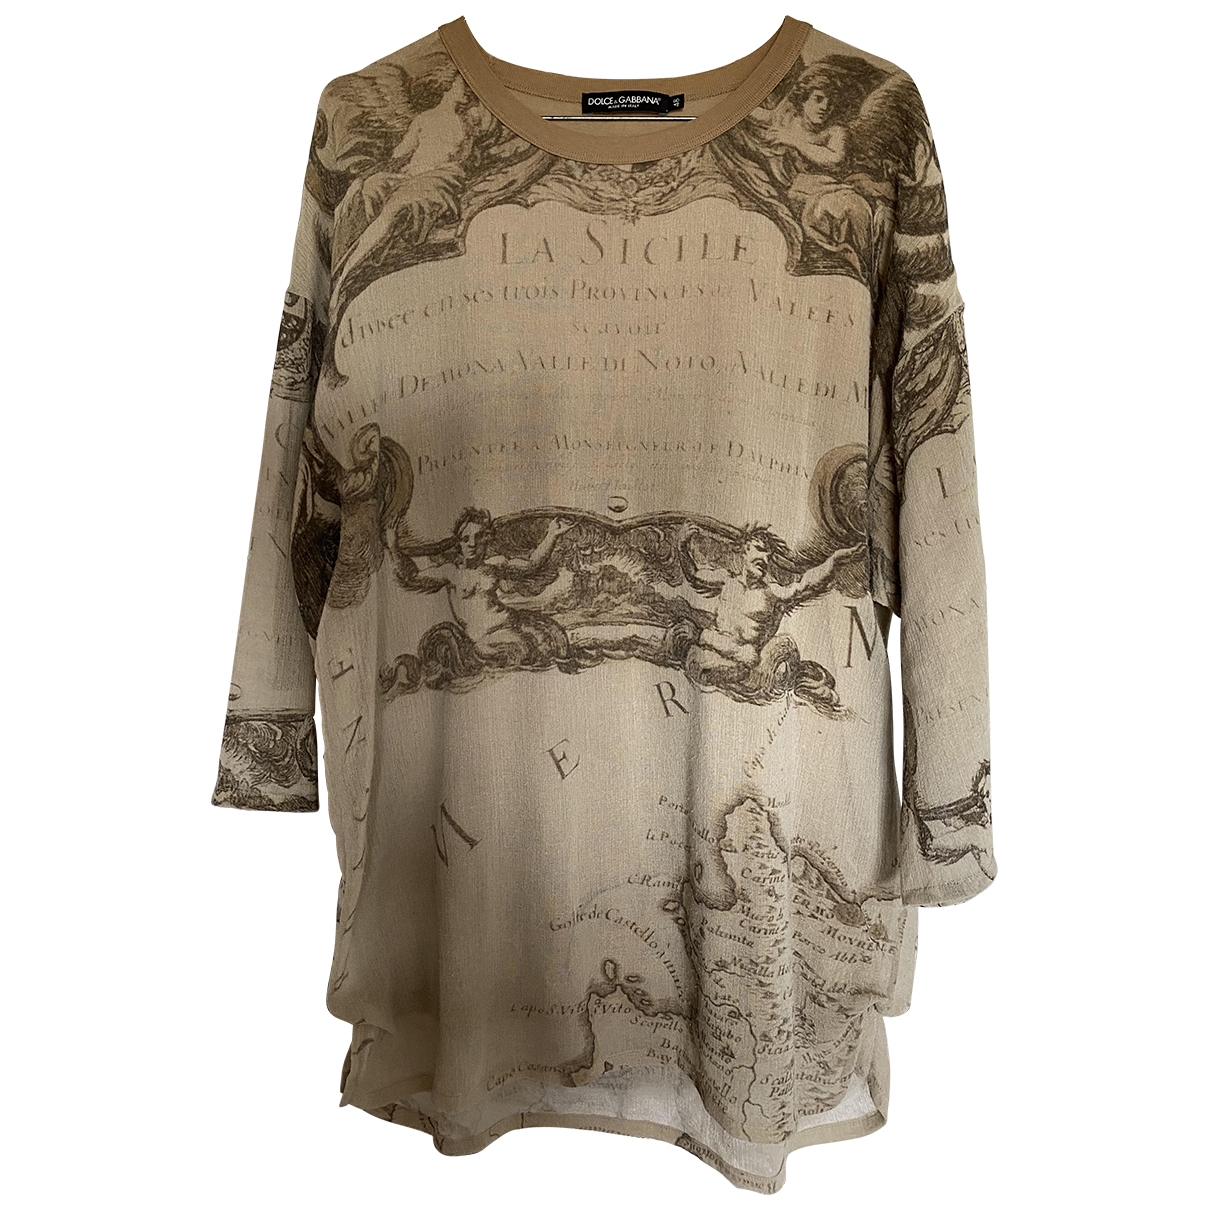 Dolce & Gabbana - Tee shirts   pour homme - beige